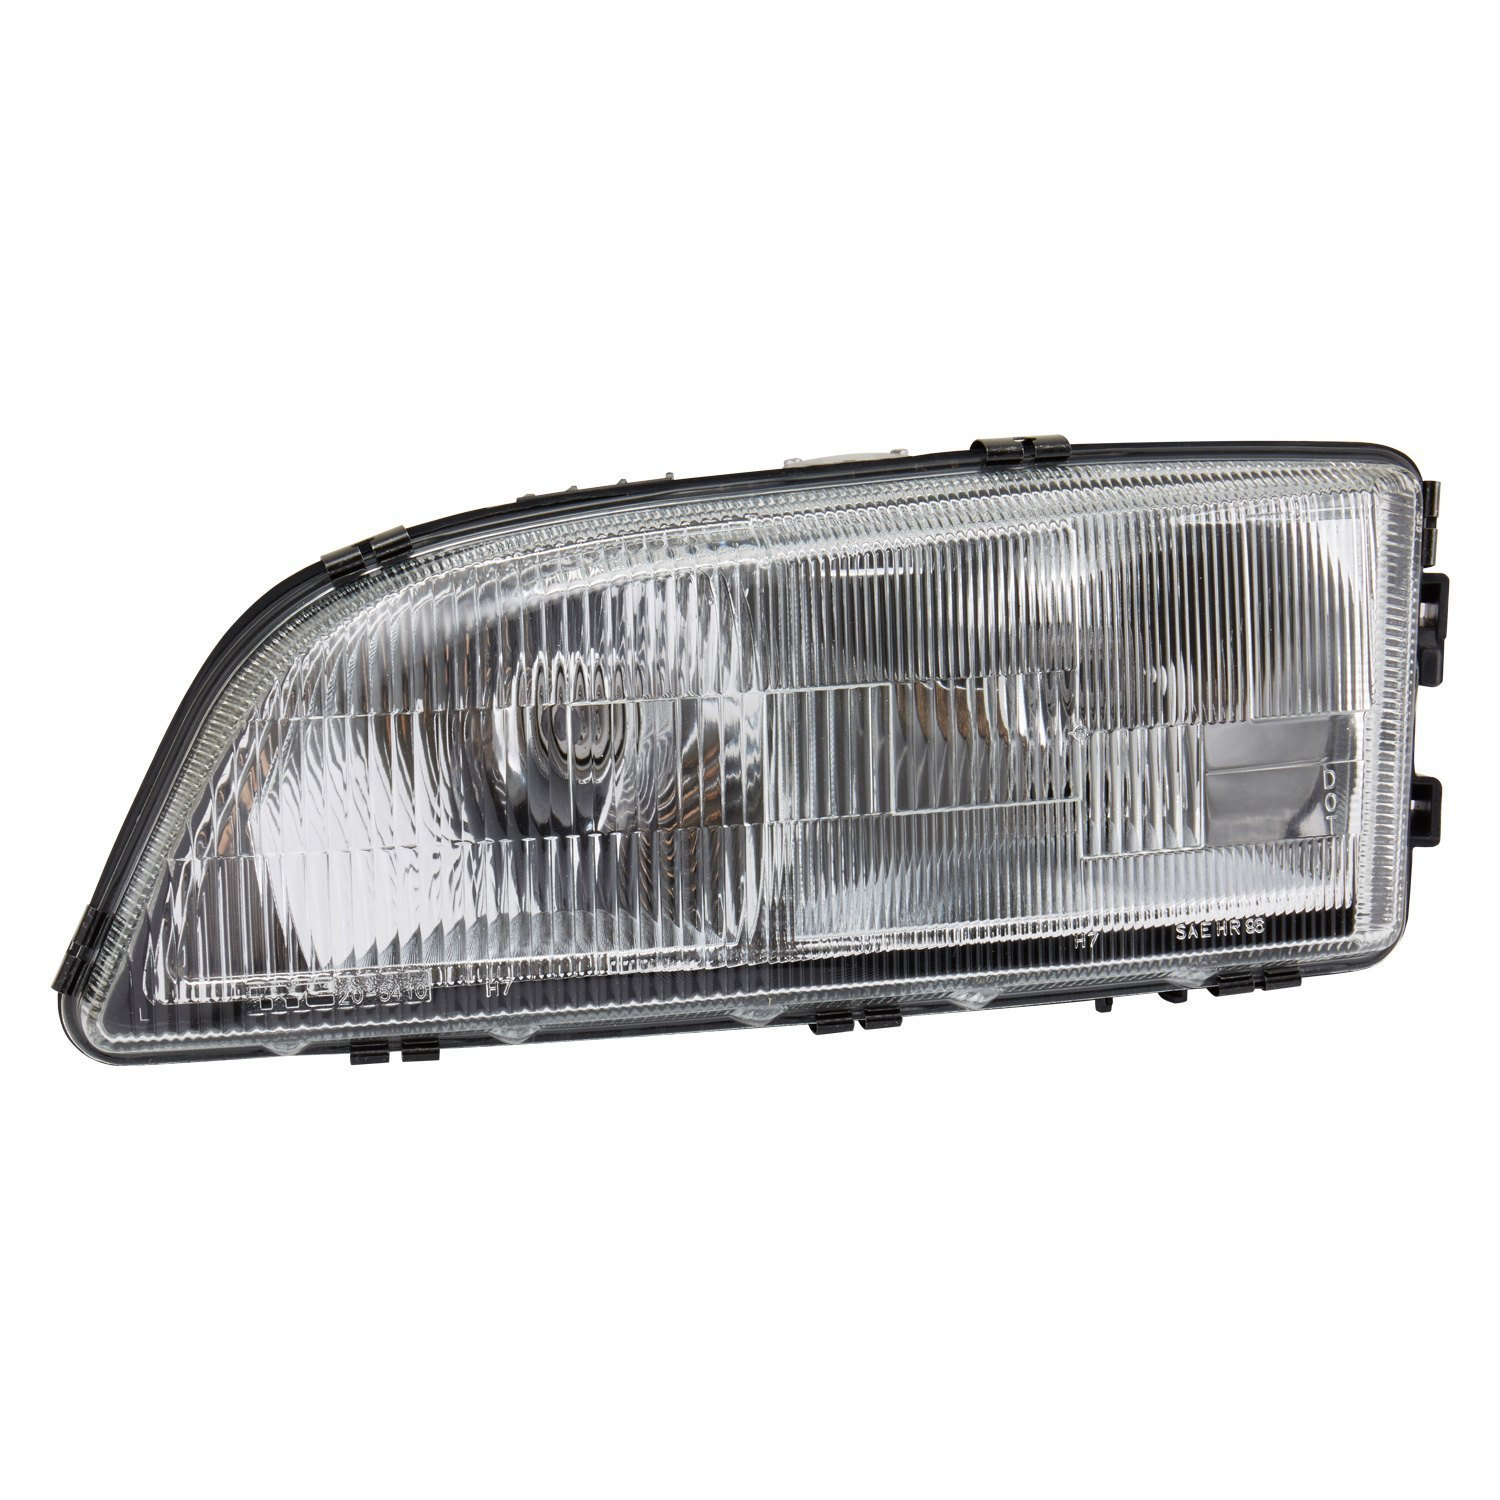 1998 Volvo S90 Exterior: Volvo V70 1998 Replacement Headlight